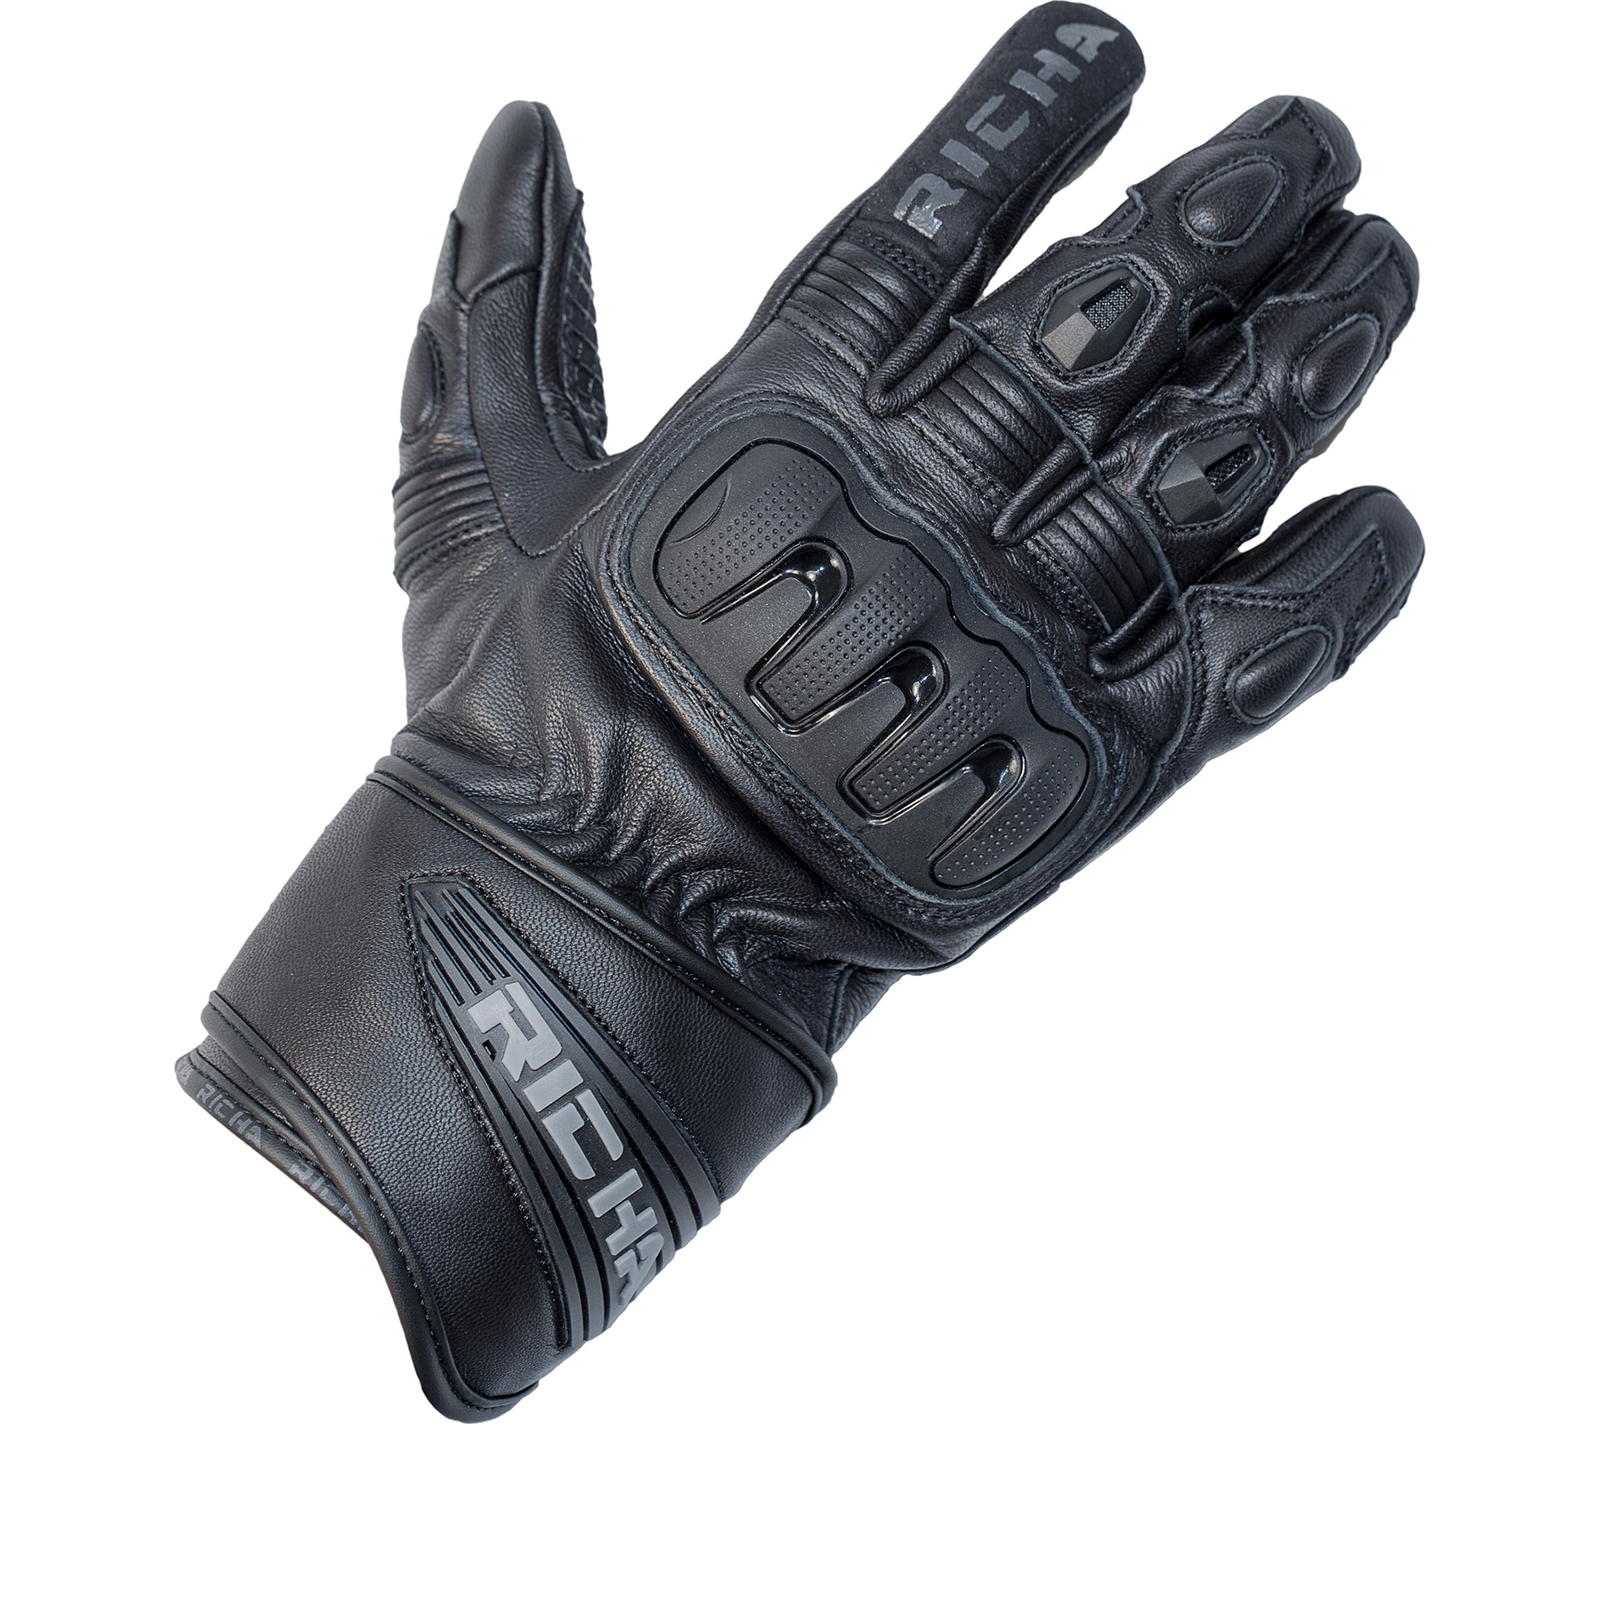 Motorcycle gloves richa - Richa Dark Leather Motorcycle Gloves